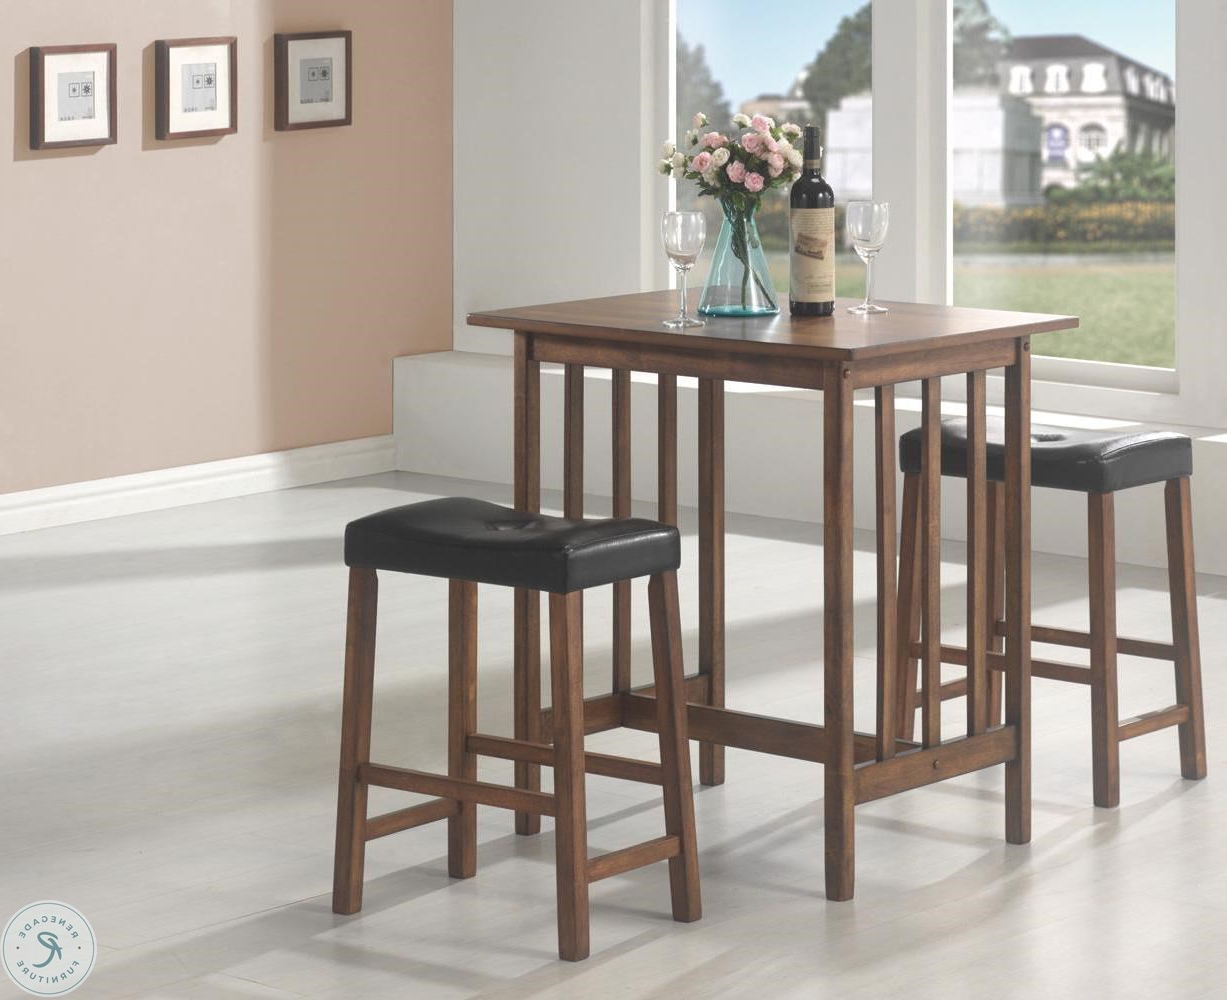 Most Popular Penelope 3 Piece Counter Height Wood Dining Sets Inside Black 3 Pcs Counter Height Dining & Dinette Set 130004 From Coaster (View 9 of 25)